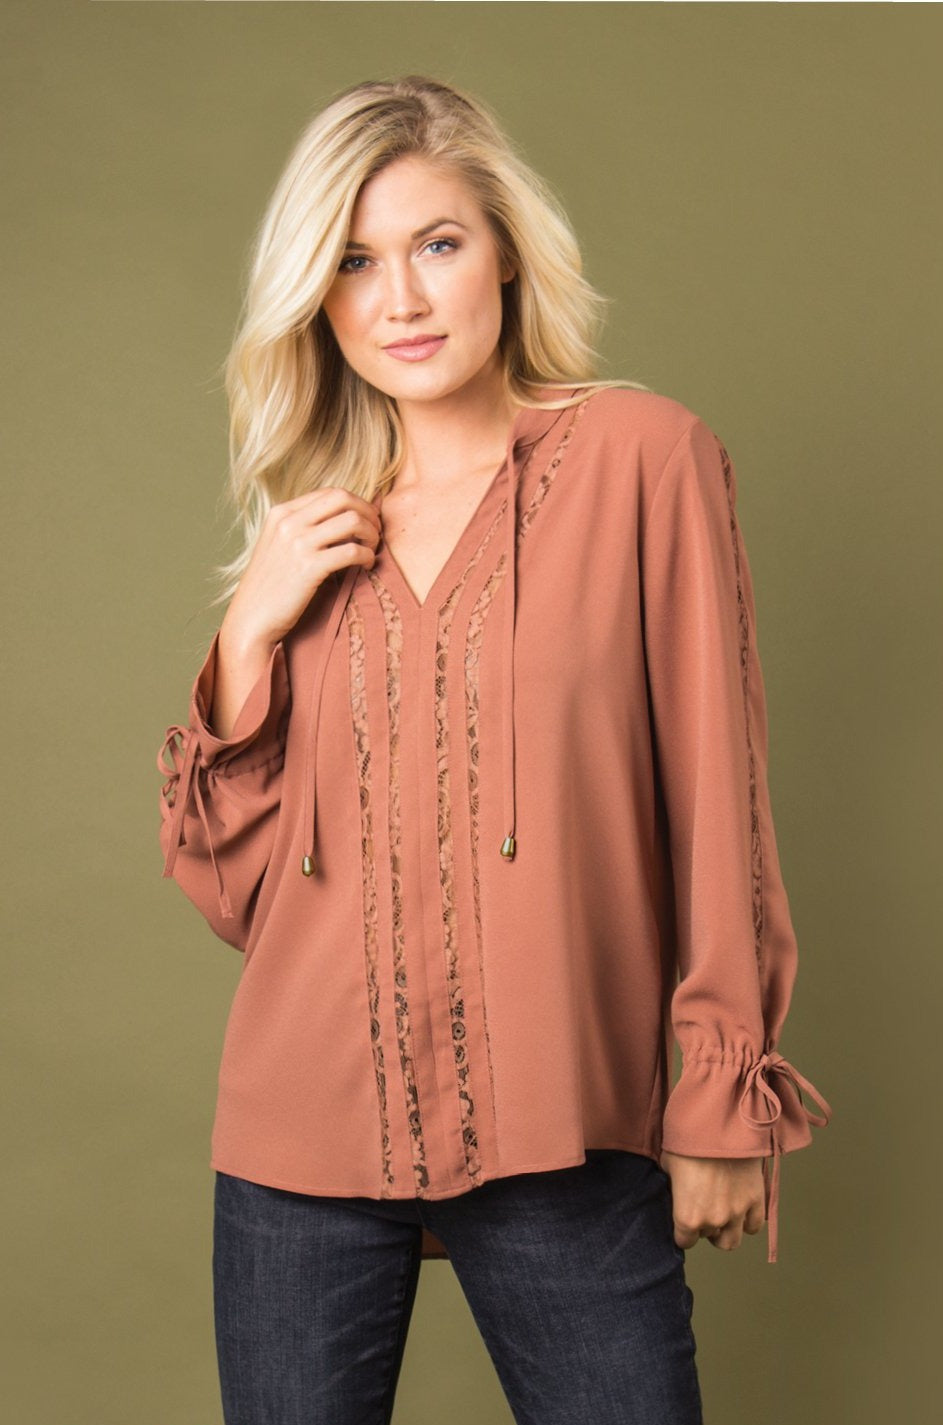 Fashionably Lace Top